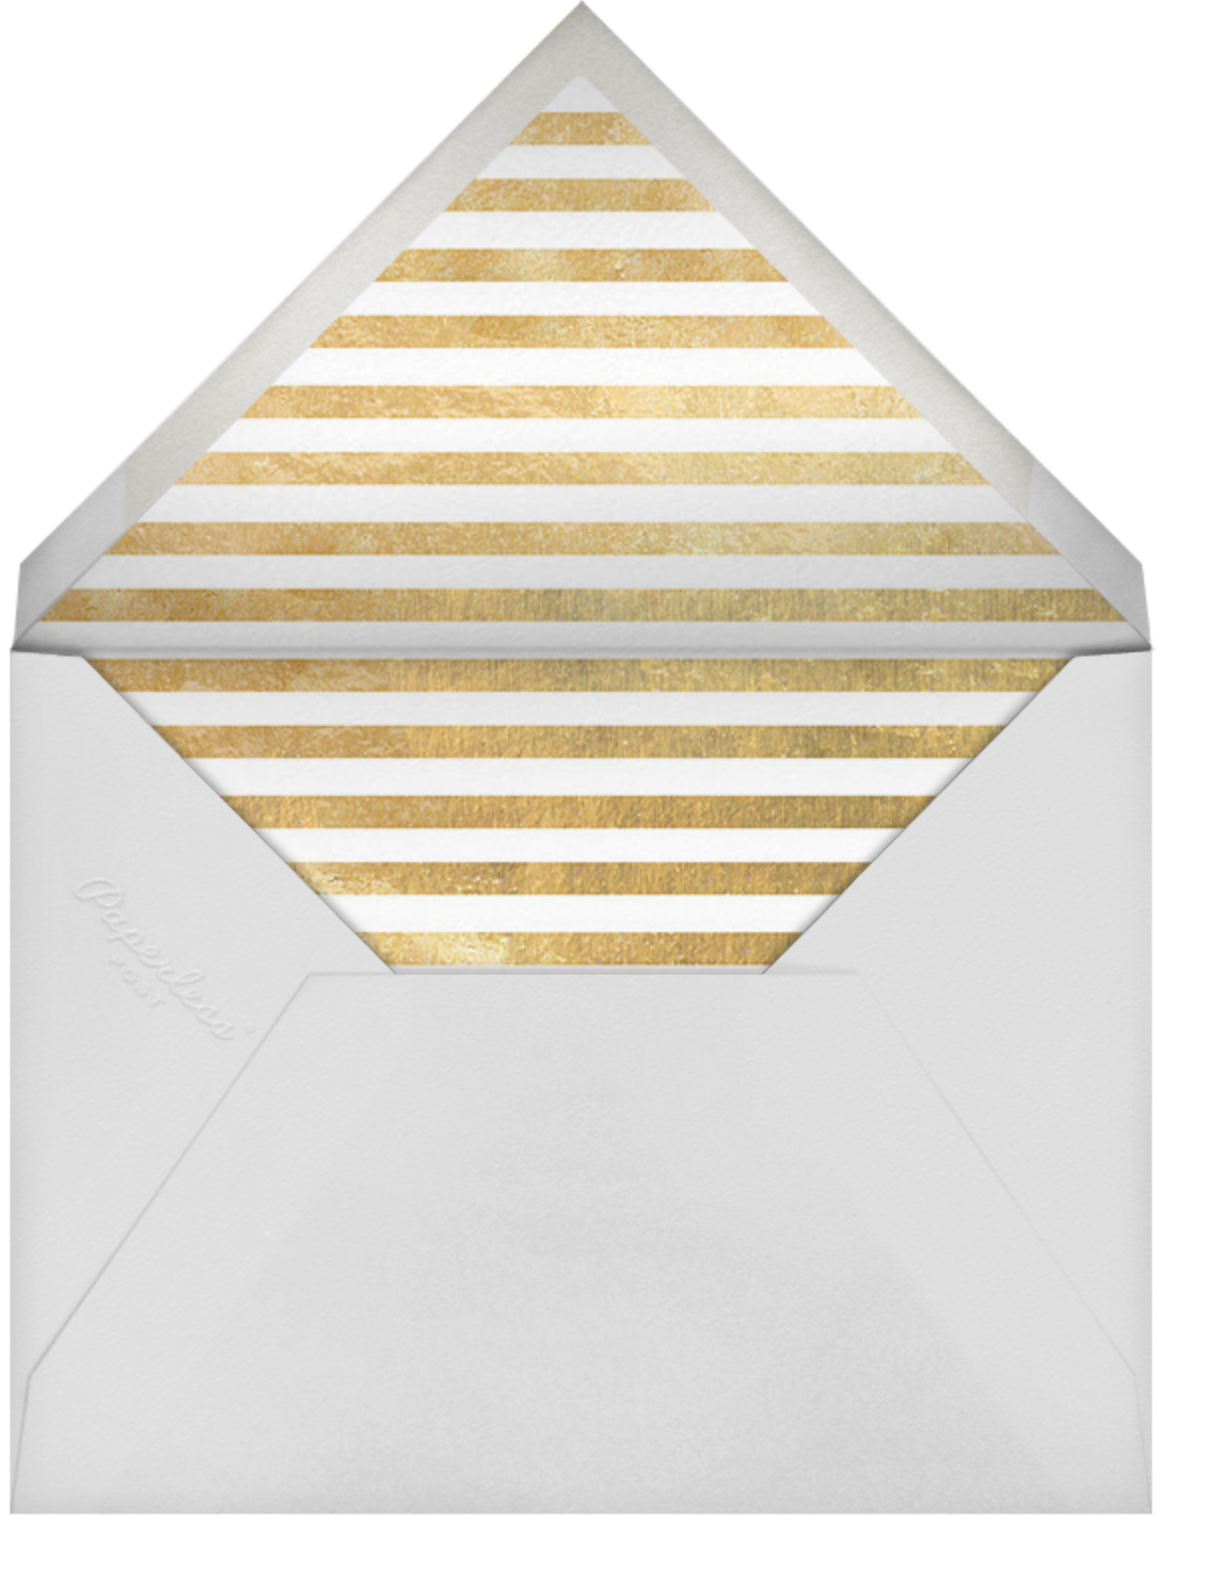 Confetti (Invitation) - White/Gold - kate spade new york - Professional events - envelope back